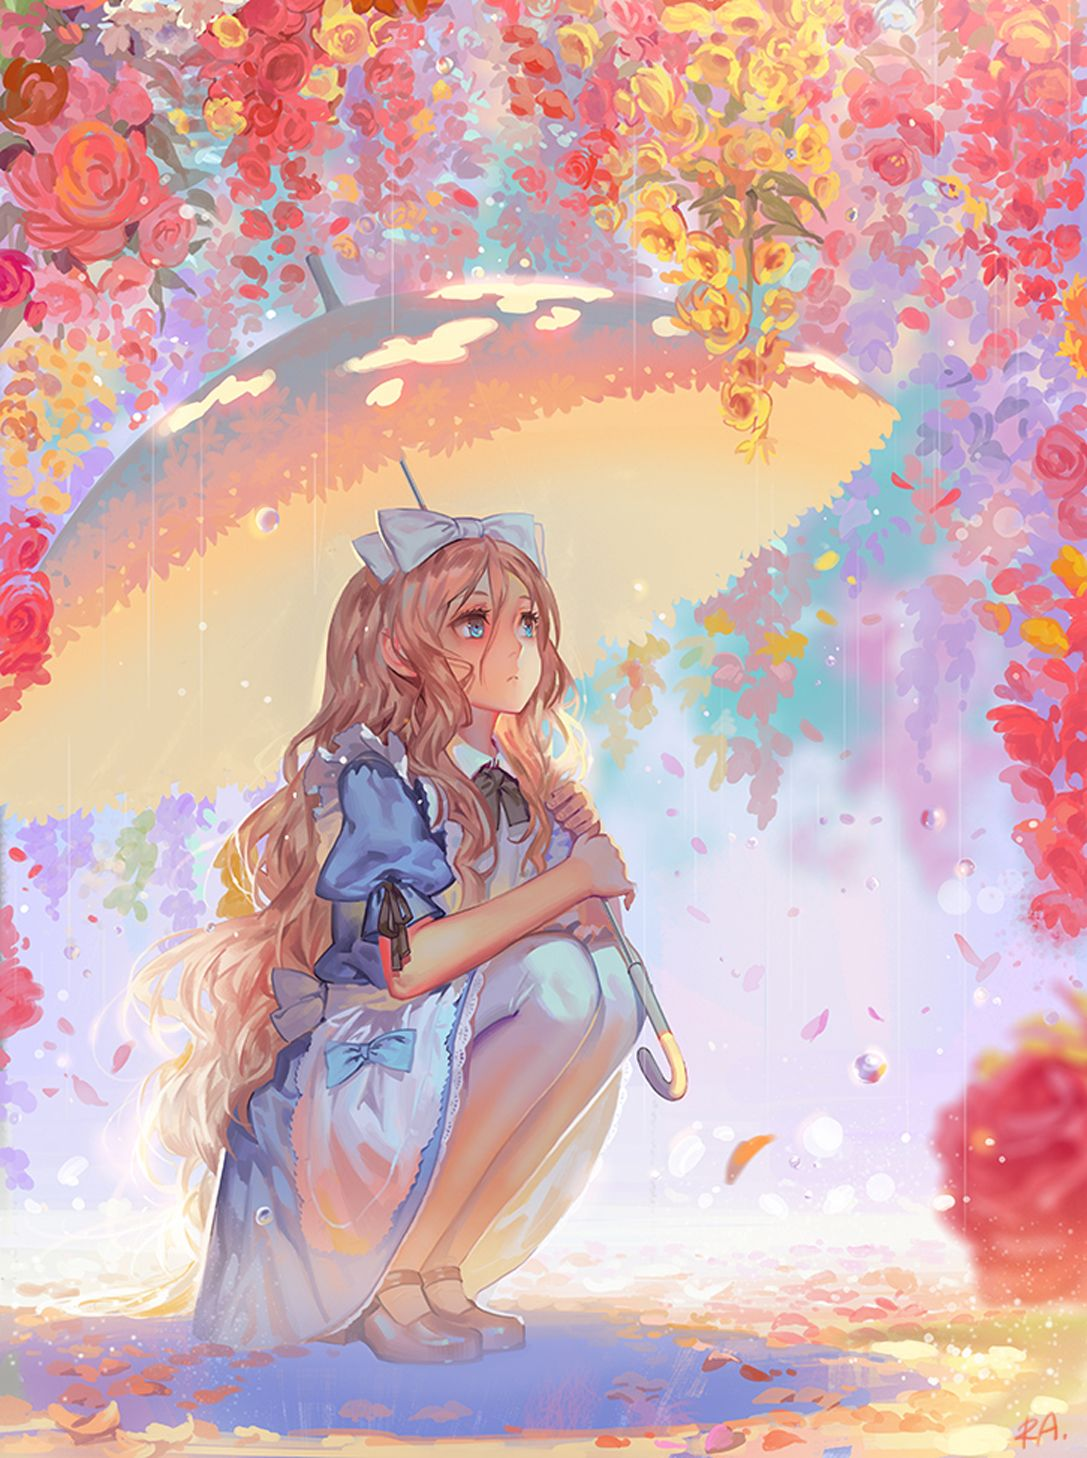 Alice in wonerland as a anime that art its so beautiful